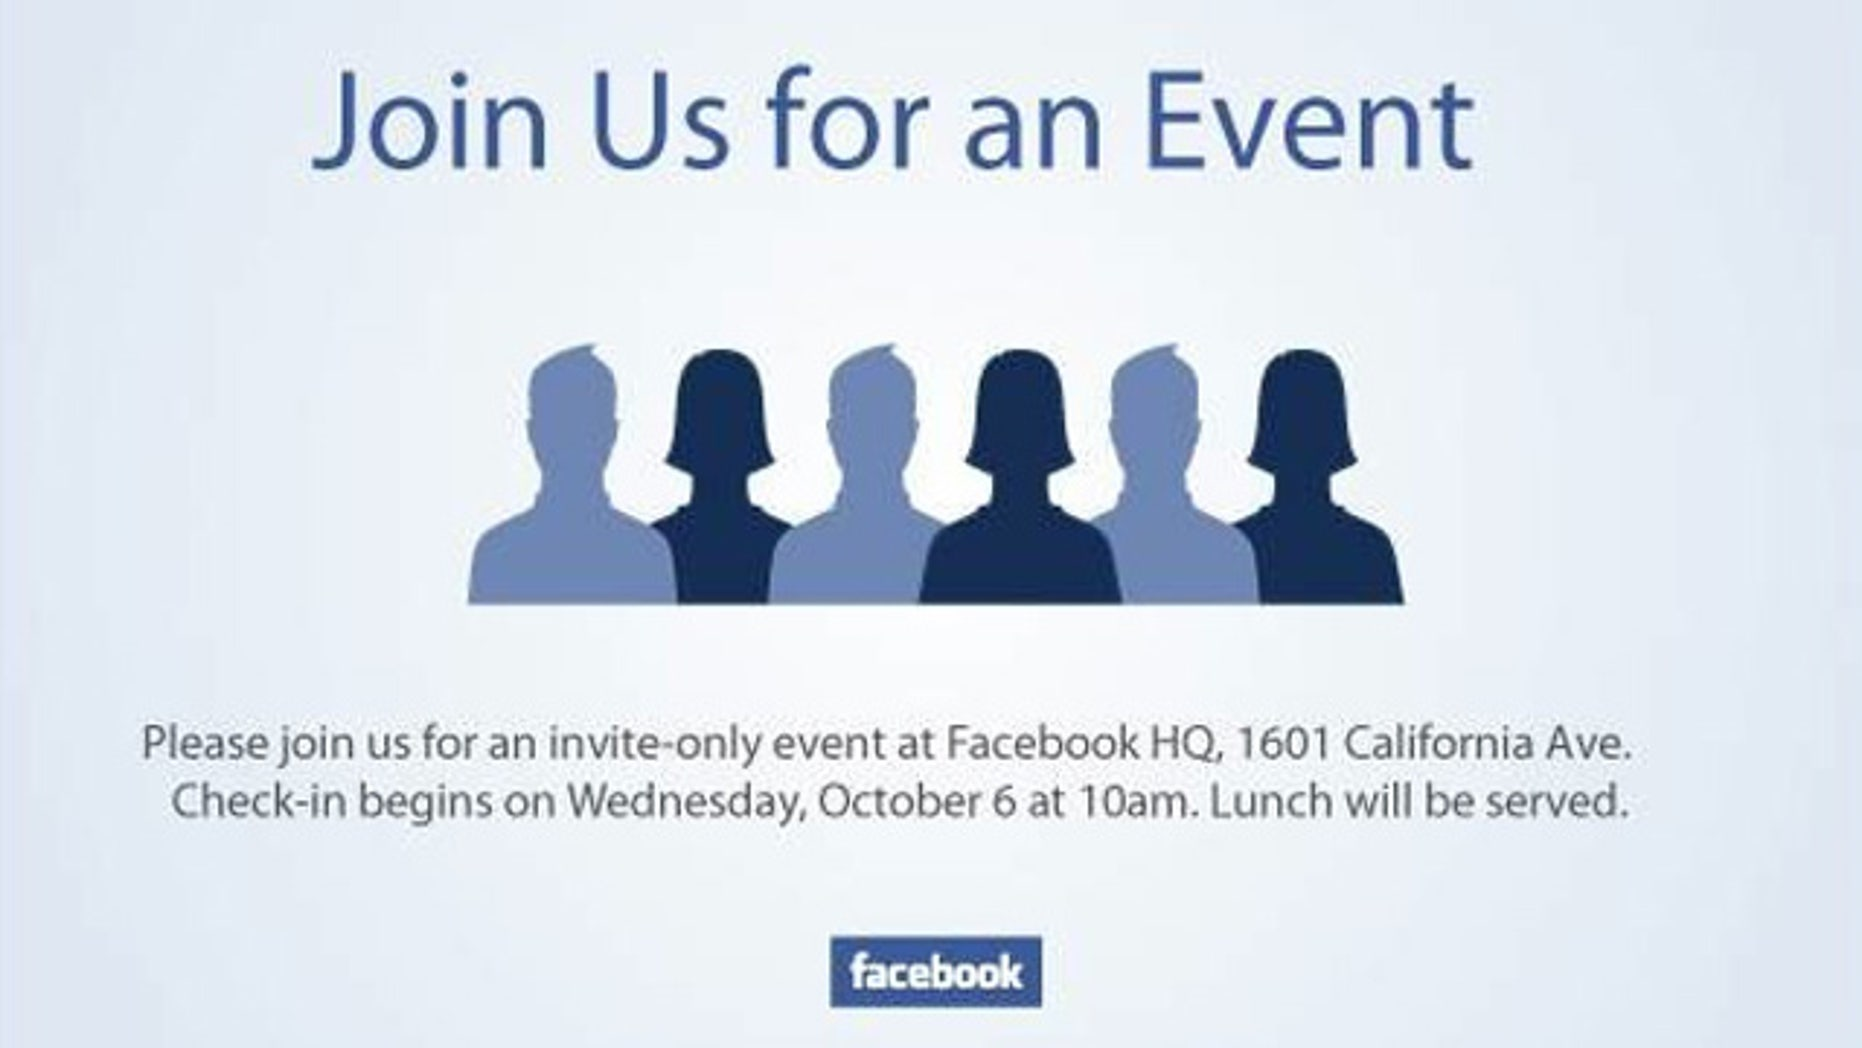 The lack of actual details means speculation about Facebook's event Wednesday is running wild.